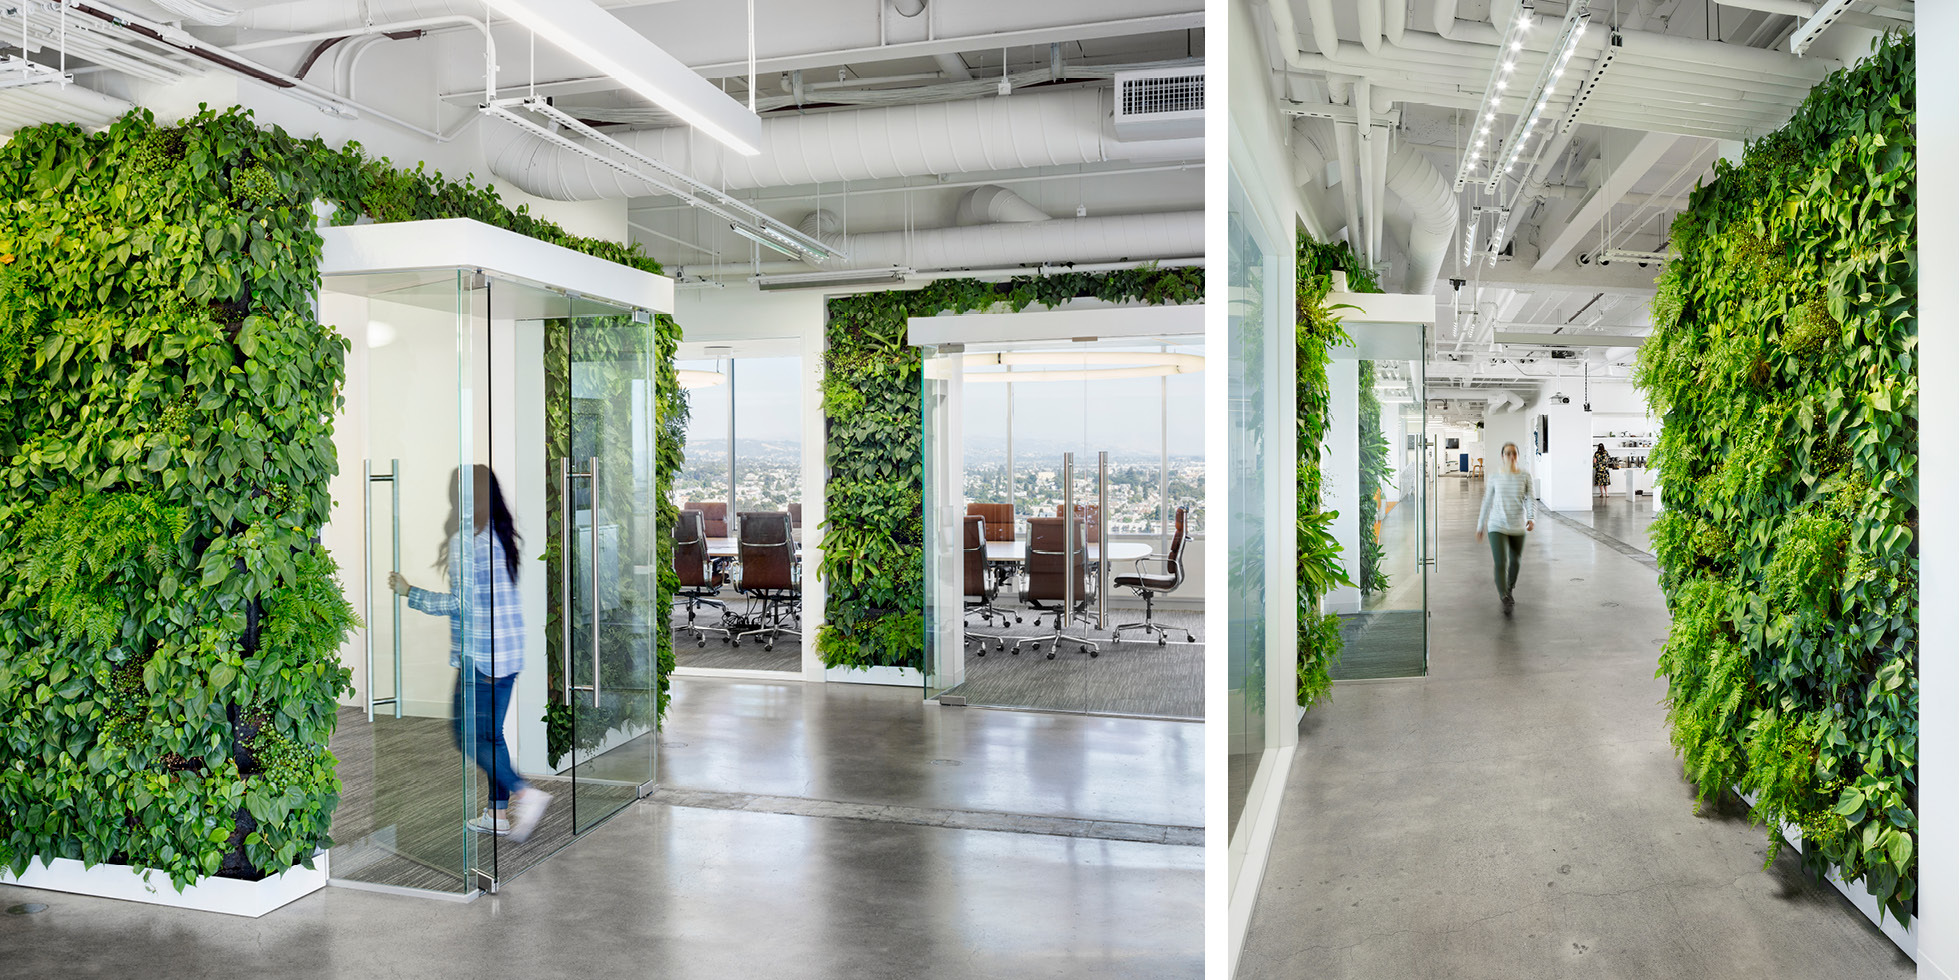 Solar Mosaic Living Wall by Habitat Horticulture - View 6